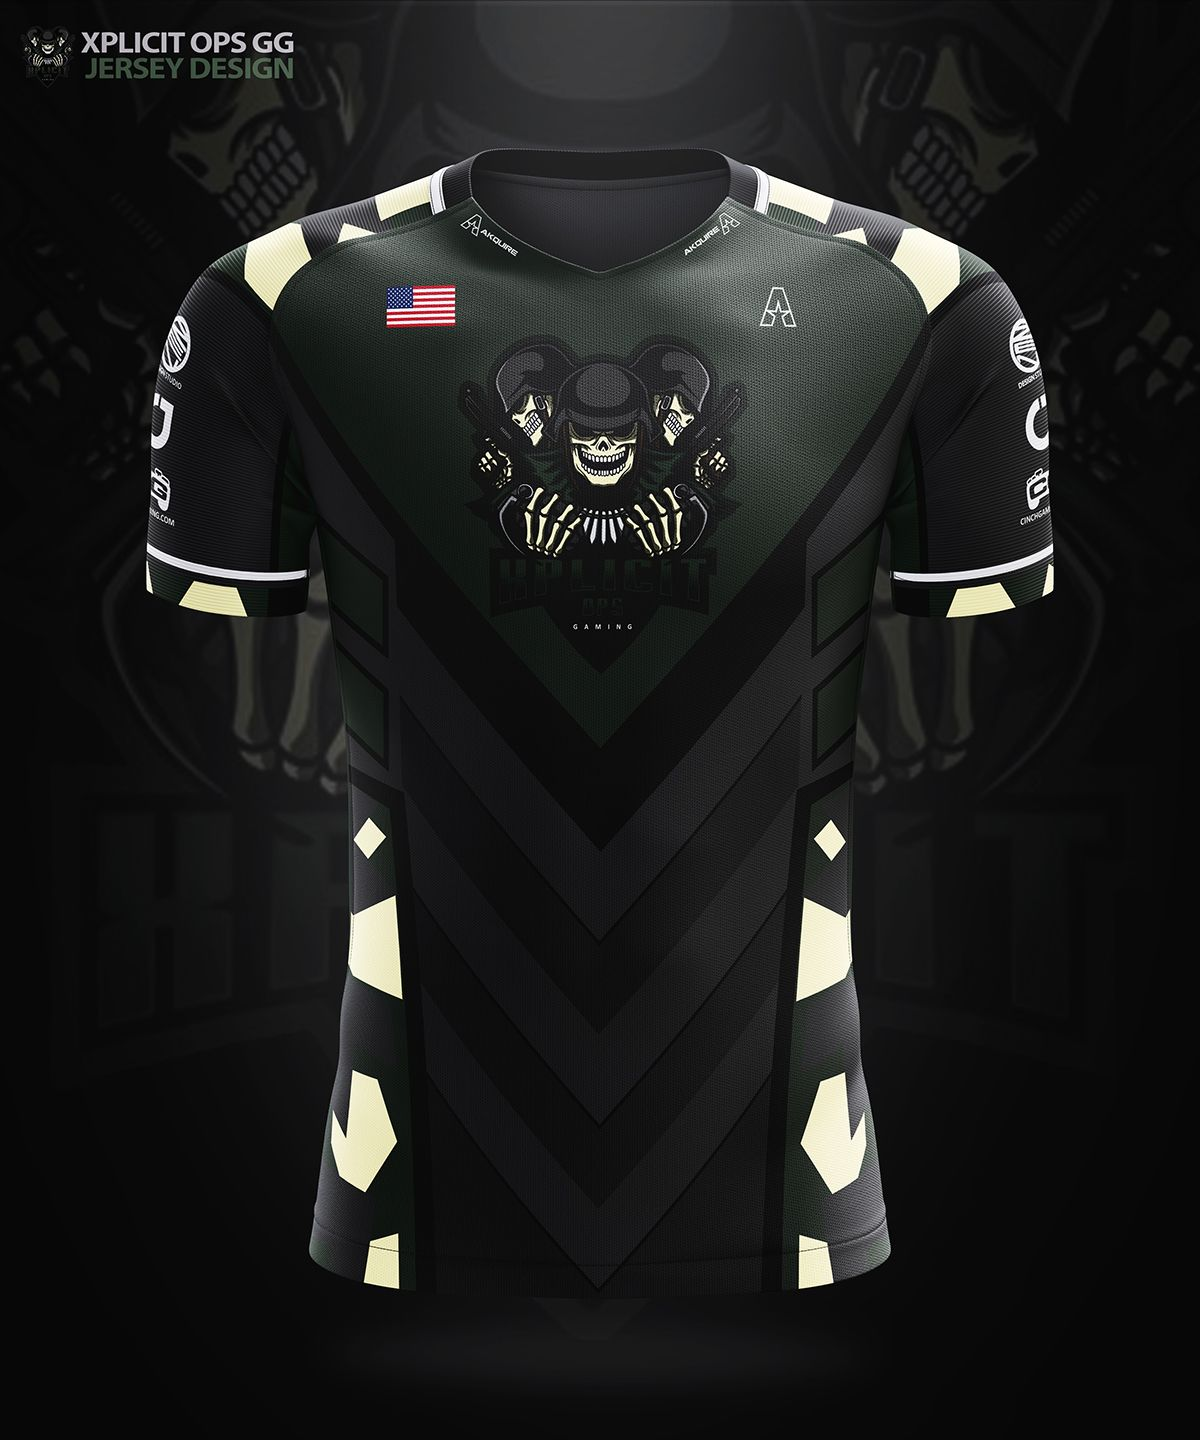 Akquire Clothing Co Esports Team Jersey Designs On Behance Sports Jersey Design Jersey Design Volleyball Jersey Design